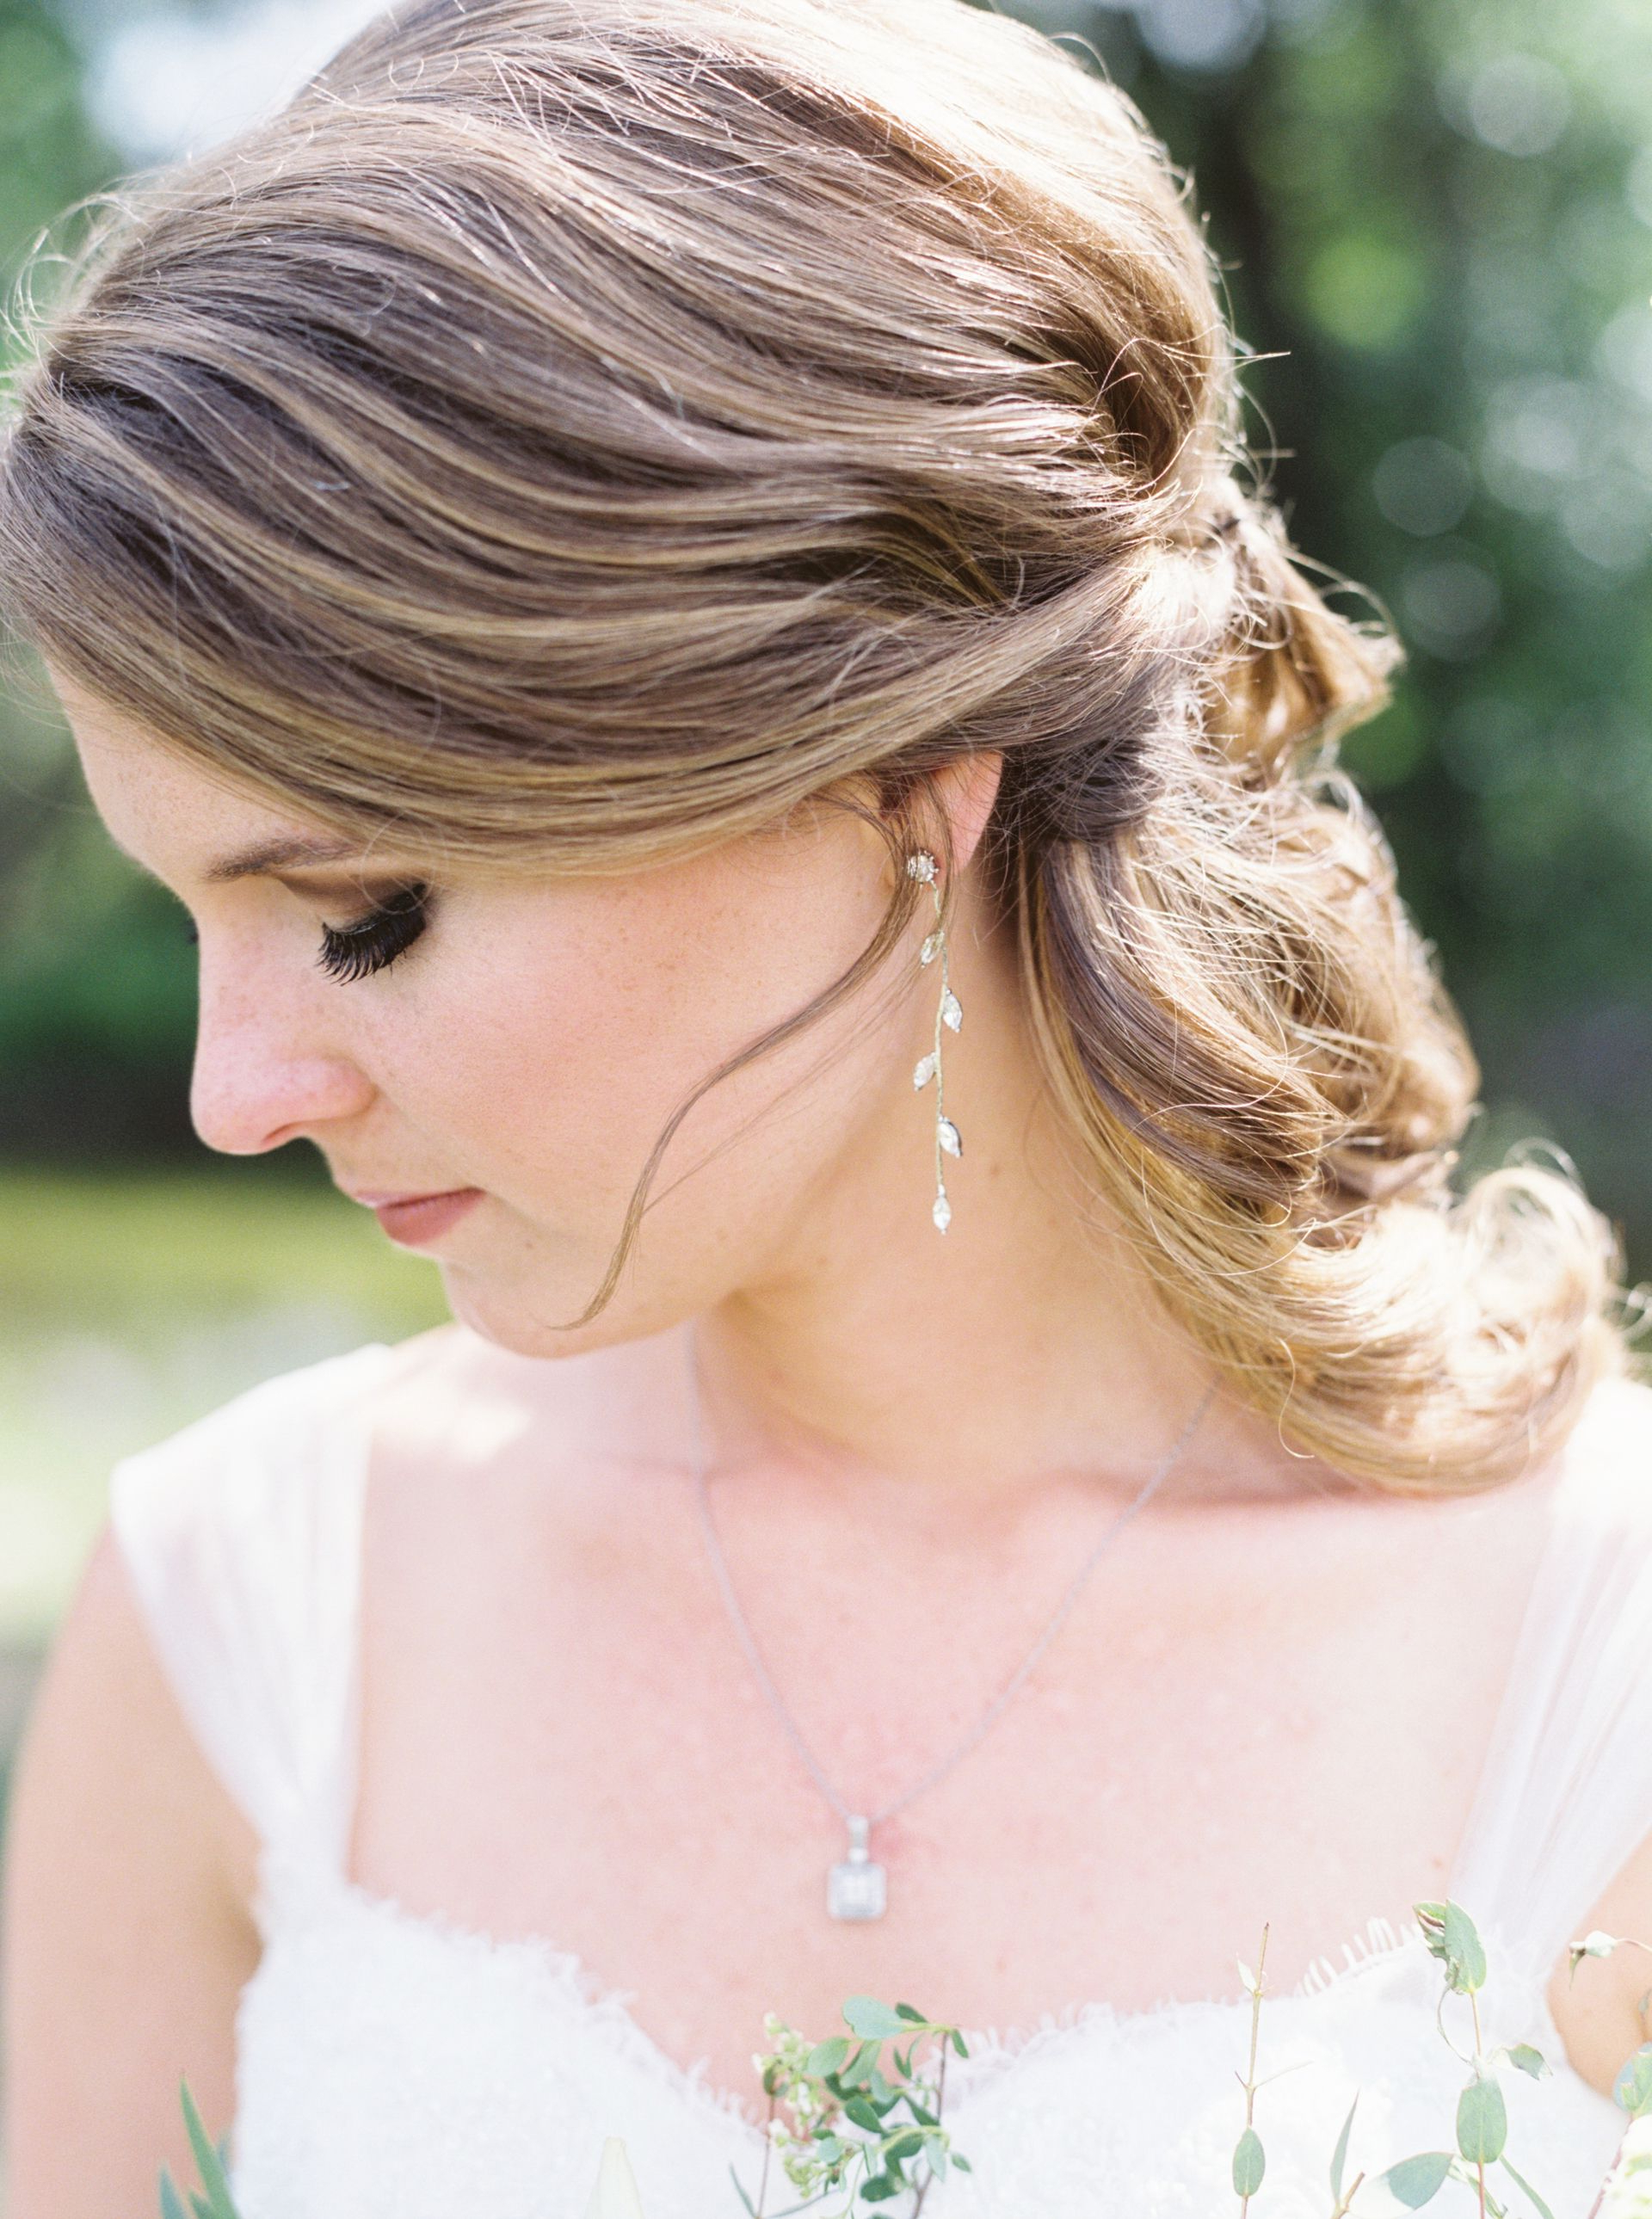 Latest Romantic Bridal Hairstyles For Natural Hair For Pastel Spring Wedding At Vista West Ranch (View 12 of 20)